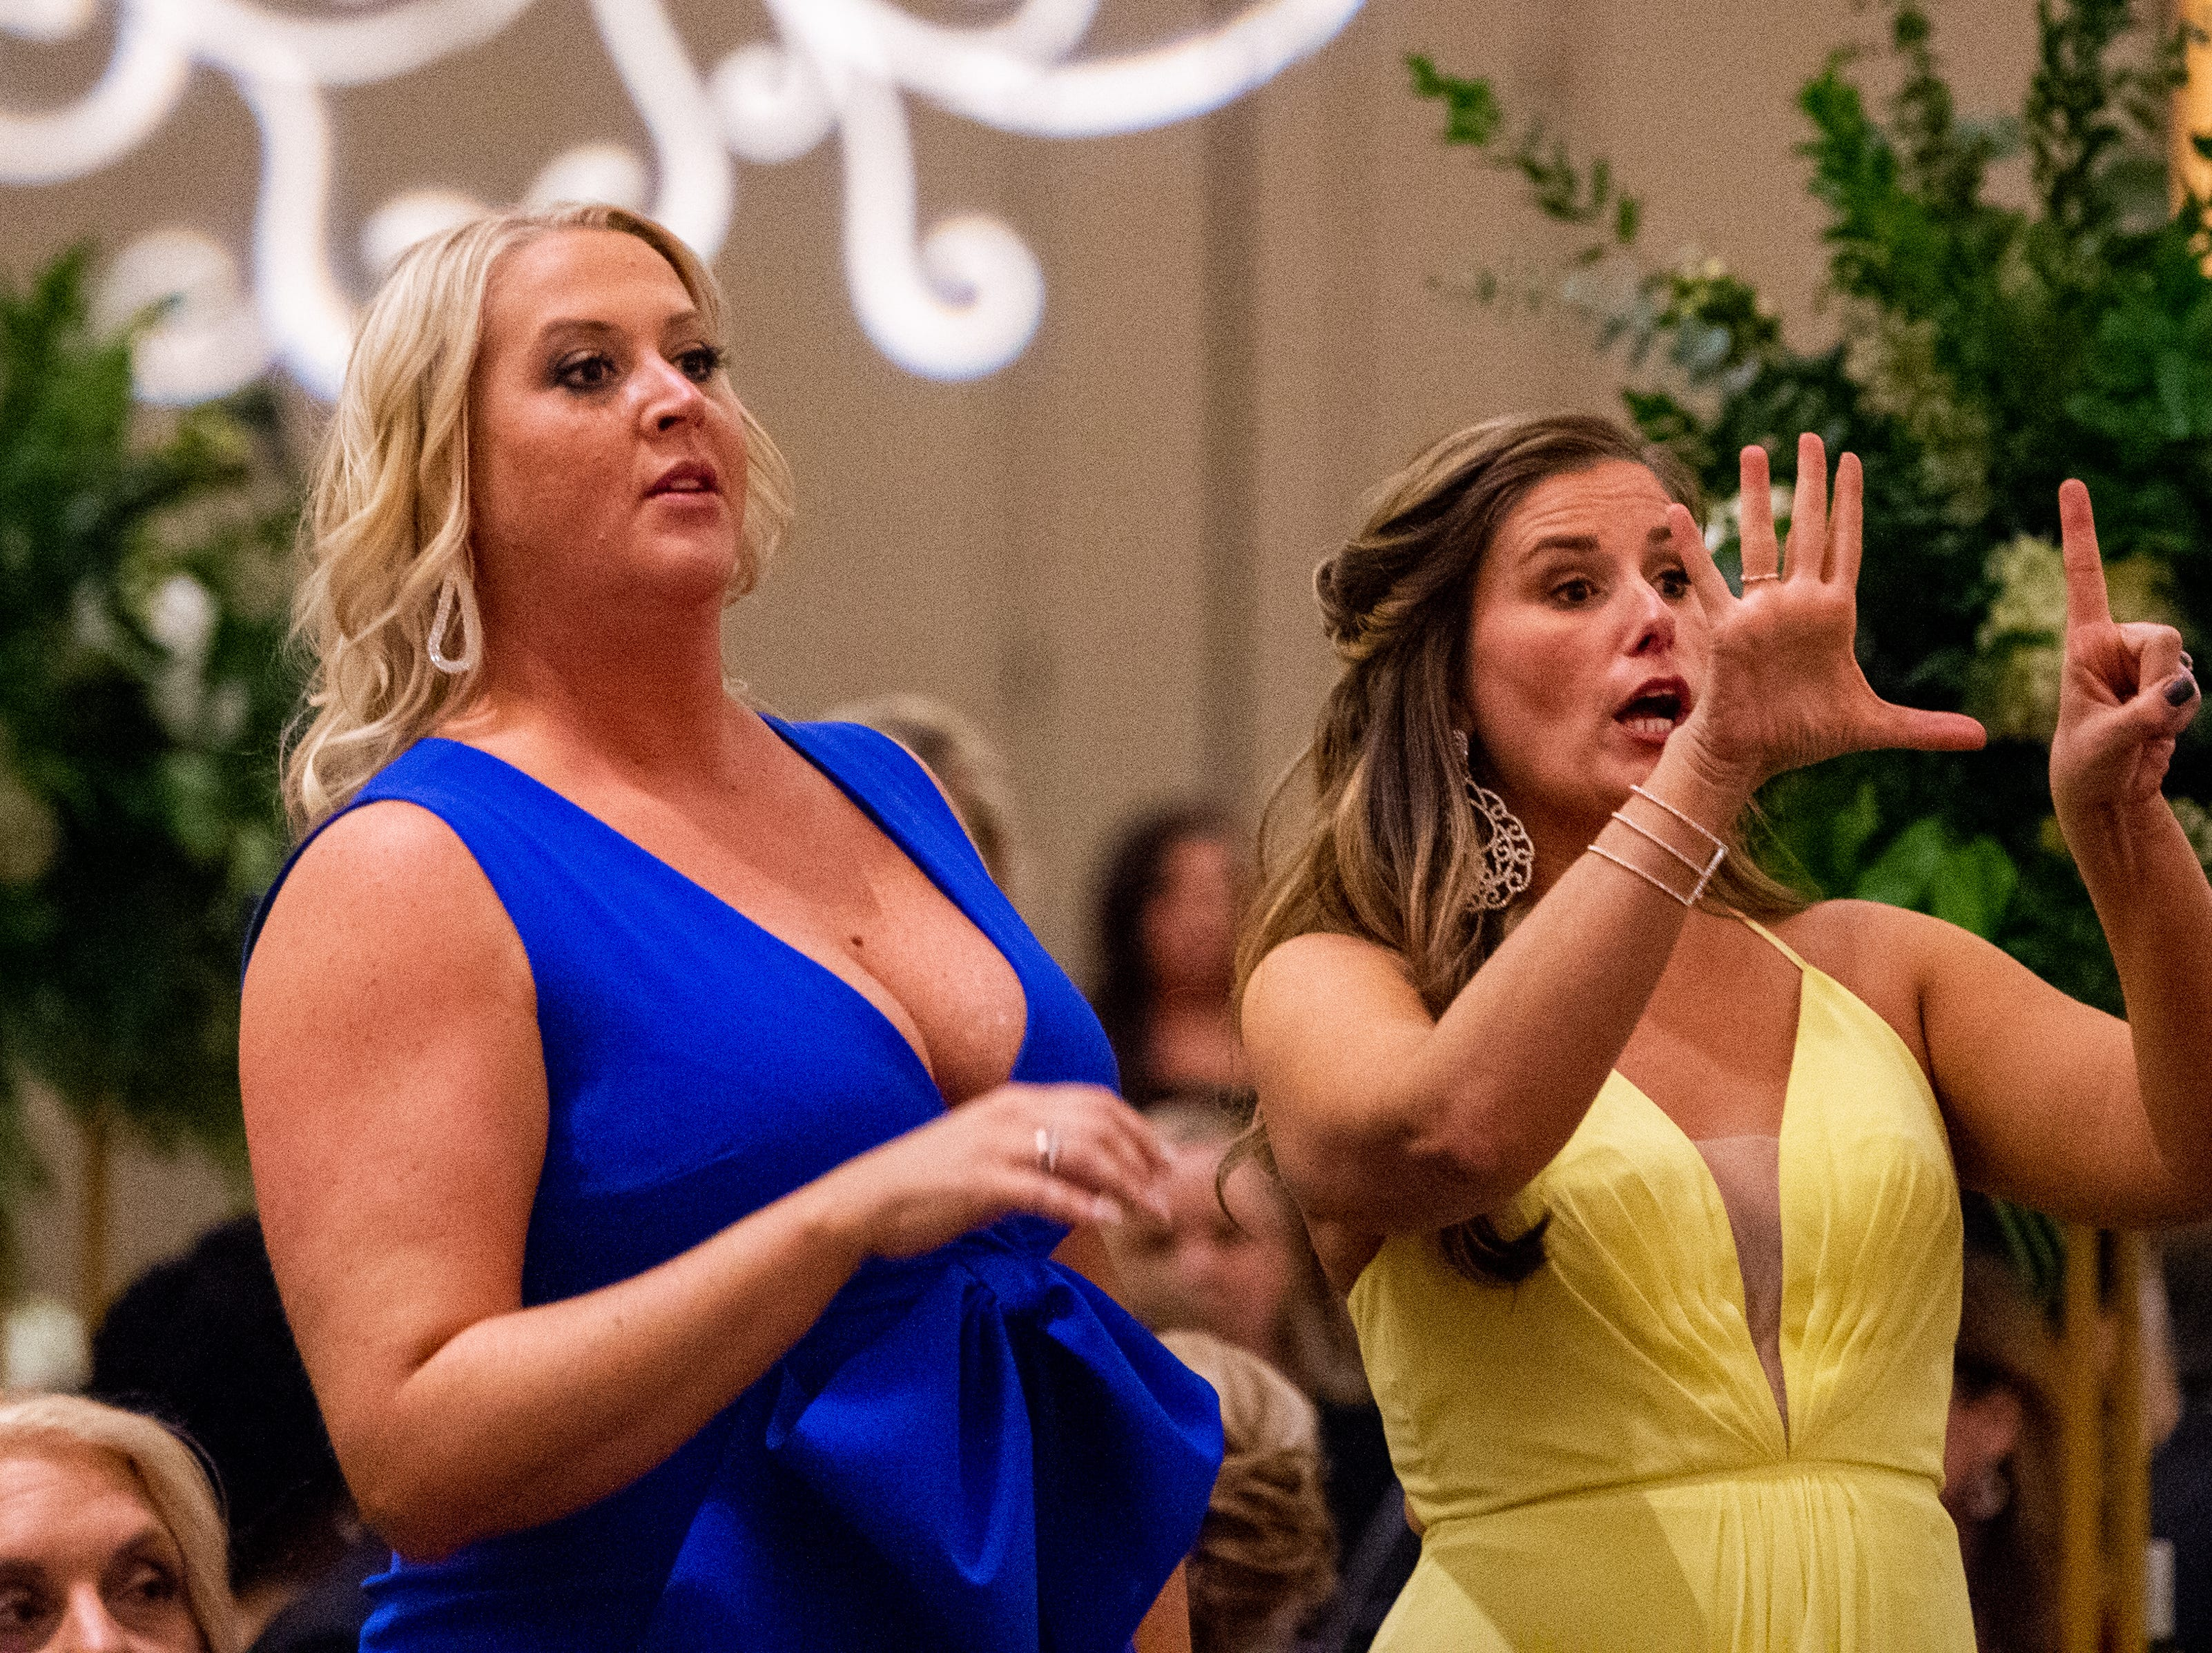 People communicate bids for the custom-designed diamond necklace made for the night during Austin Peay State University's annual Candlelight Ball at the Omni Nashville Hotel Saturday, March 16, 2019, in Nashville, Tenn.